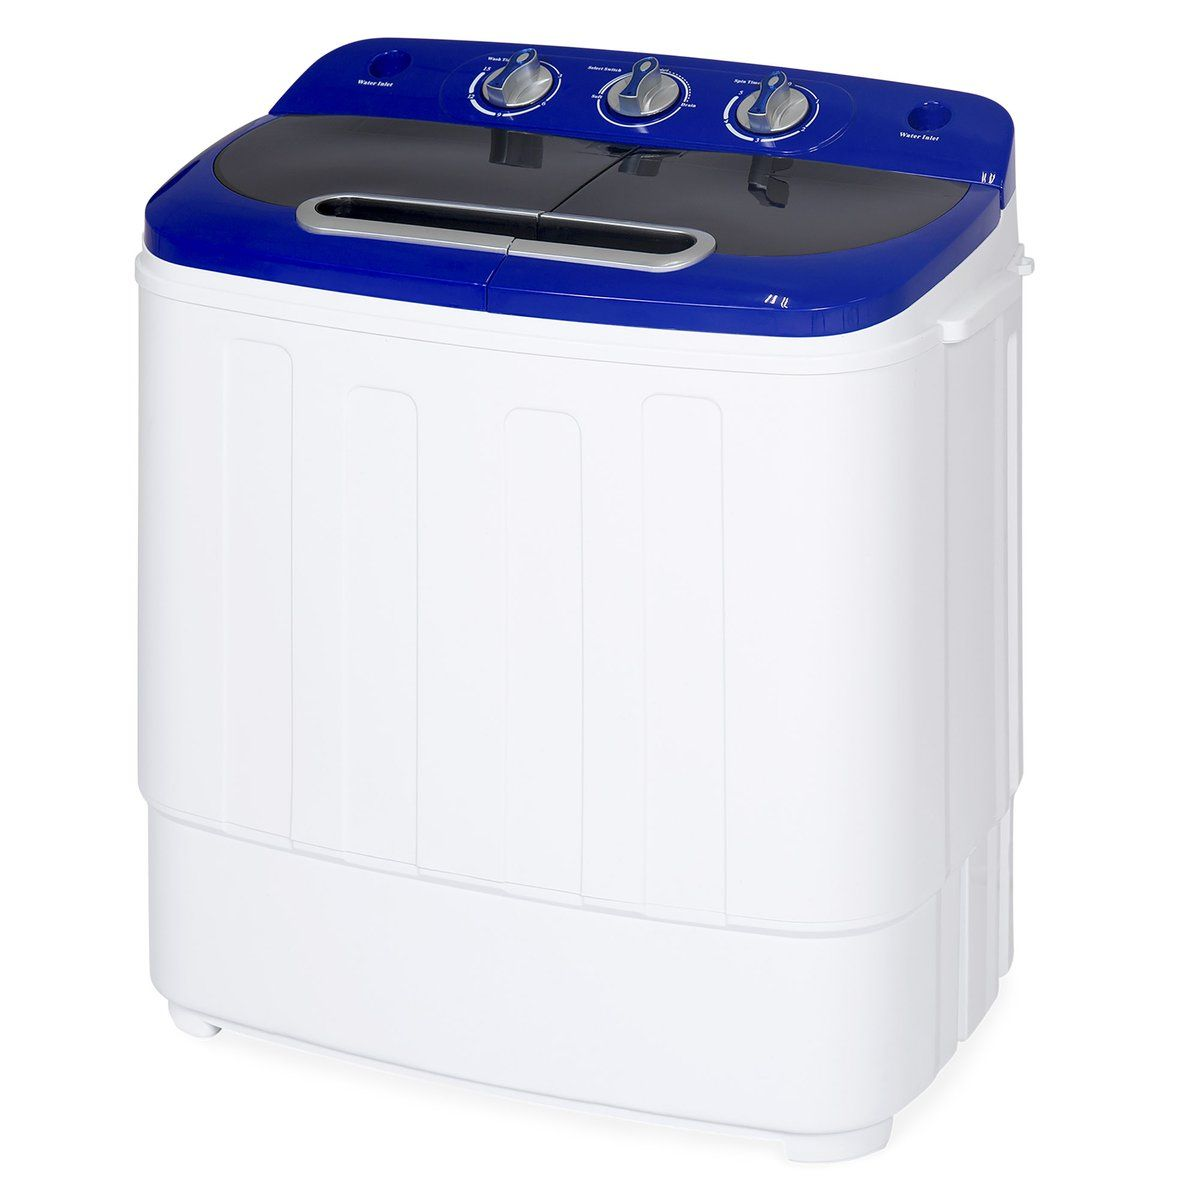 Convenient Mini Washer Compact And Portable Washing Machine And Spin Cycle Dryer Combo Is Perfect For Small Portable Washer Twin Tub Portable Washing Machine